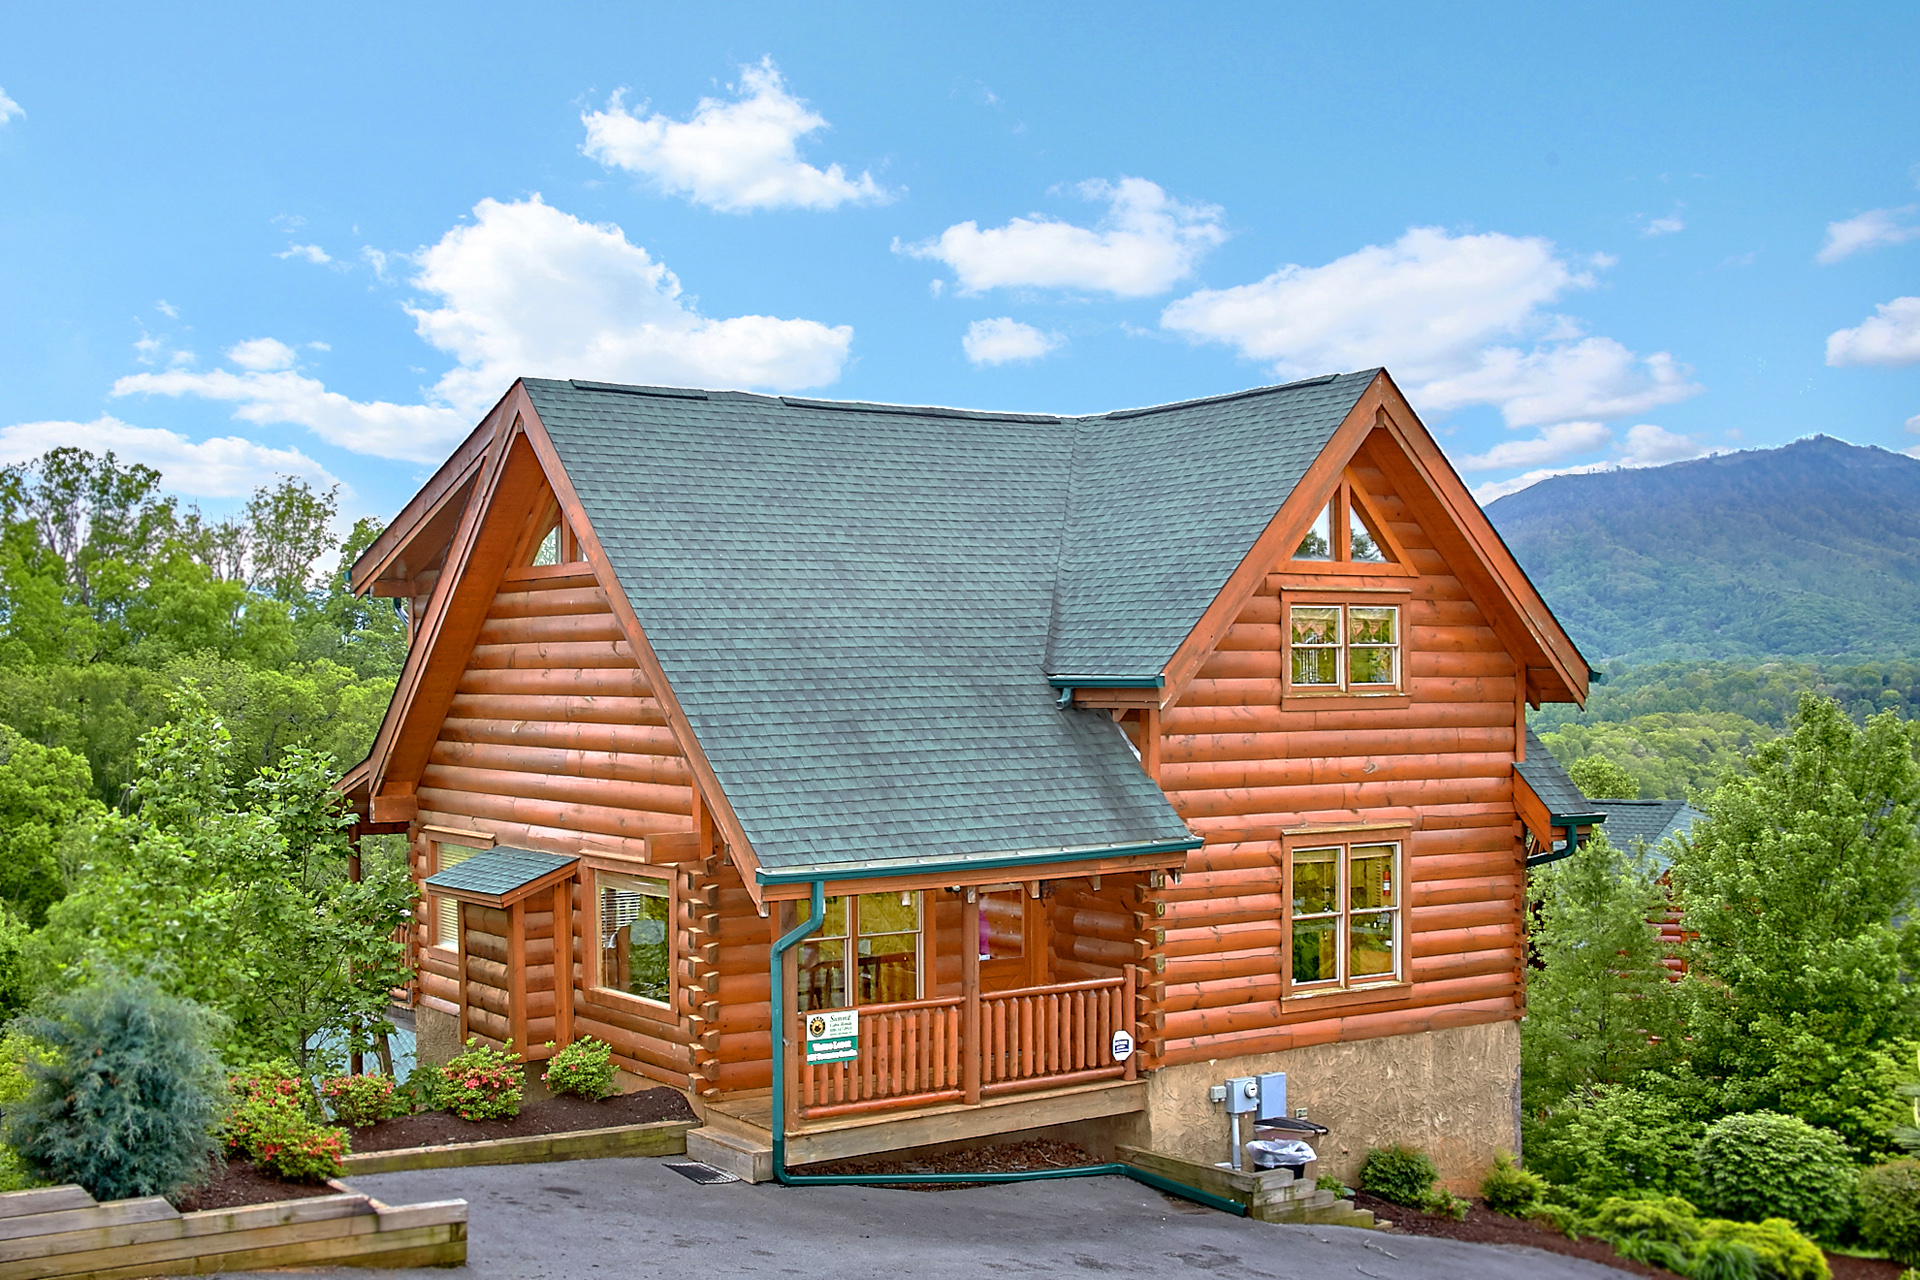 pigeon views chestnut gatlinburg and foreclosures with the short mountain of view foreclosure week cabin cabins sale deals for forge